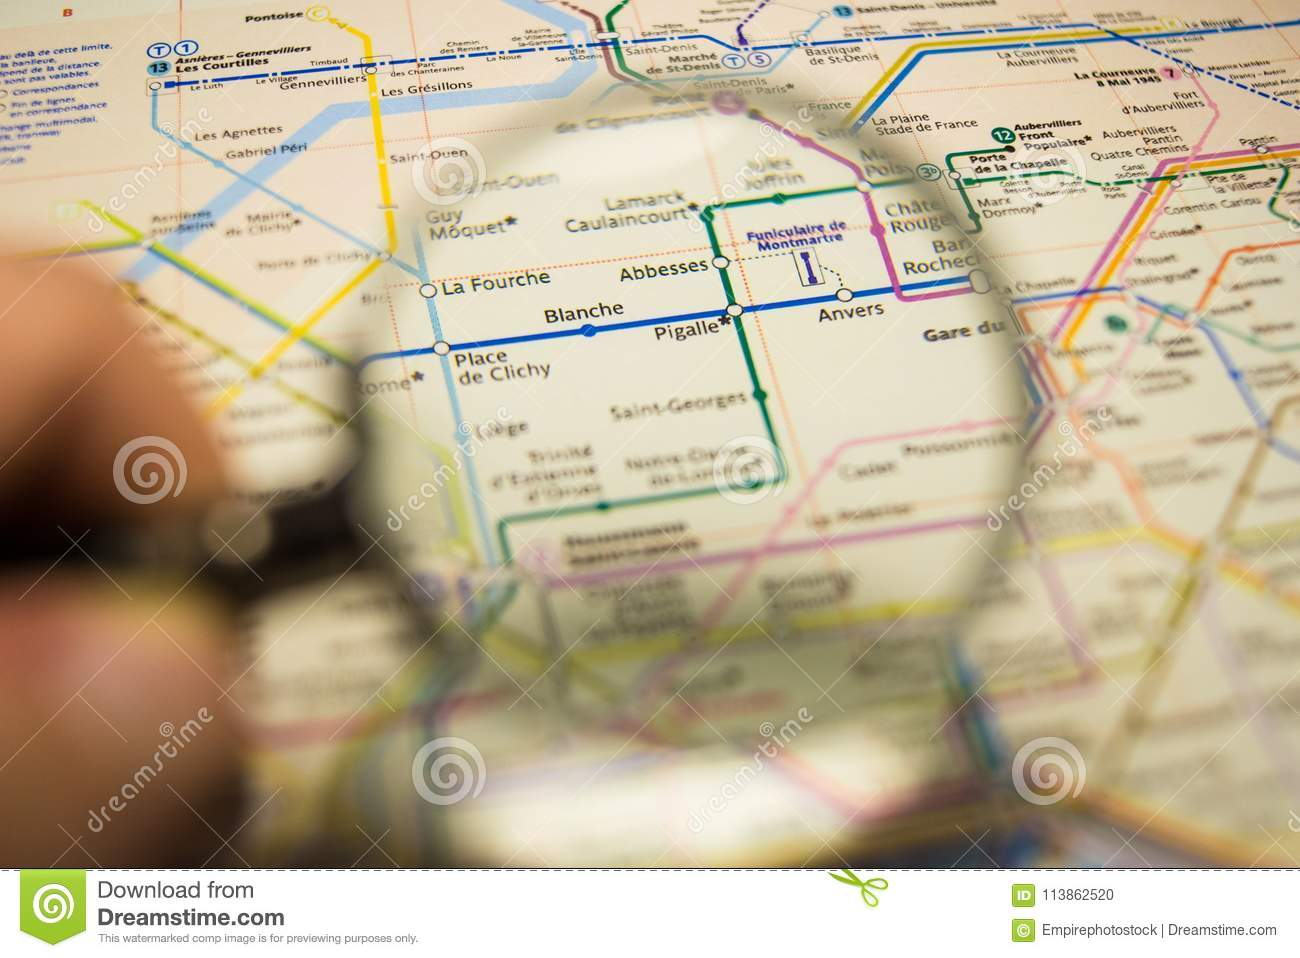 Pigalle Metro Station On A Printed Paris Metro Map Under A Magnifier